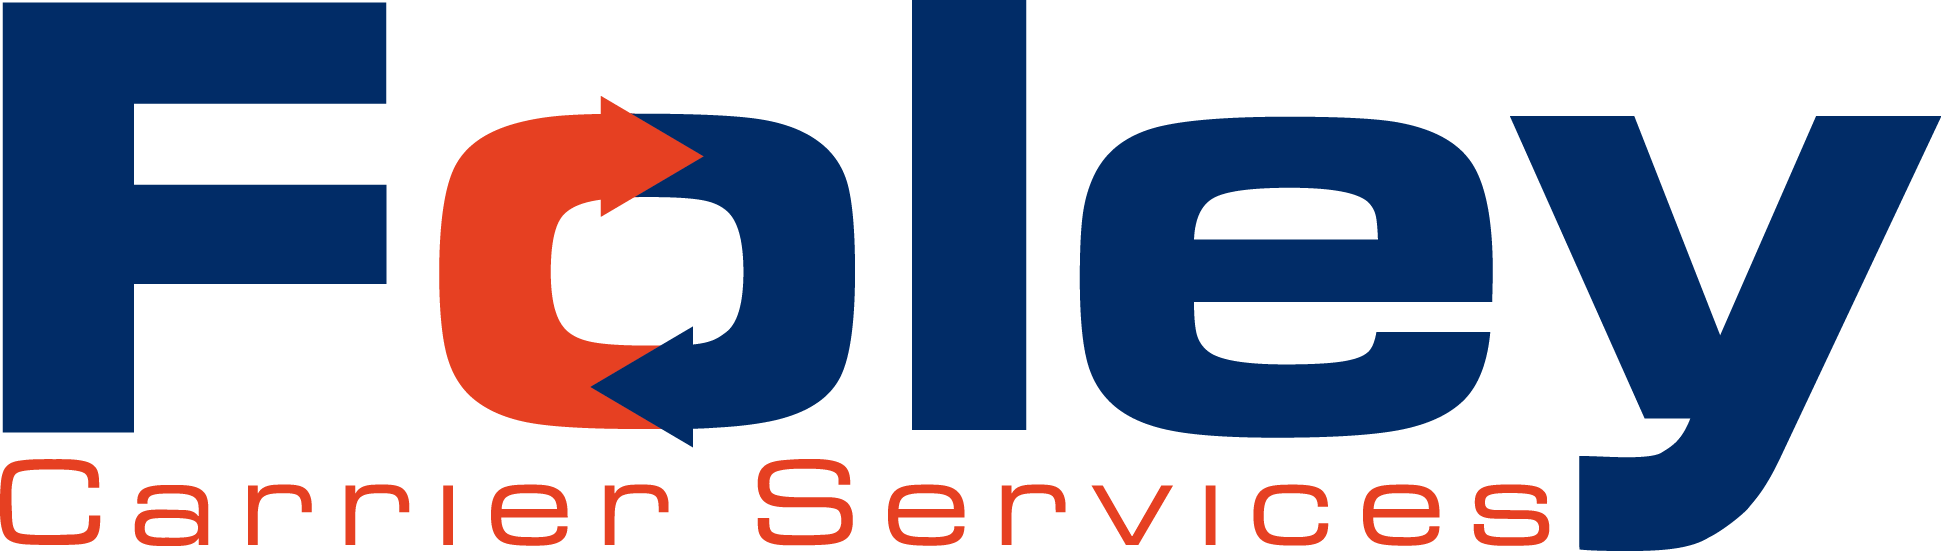 Foley Carrier Services